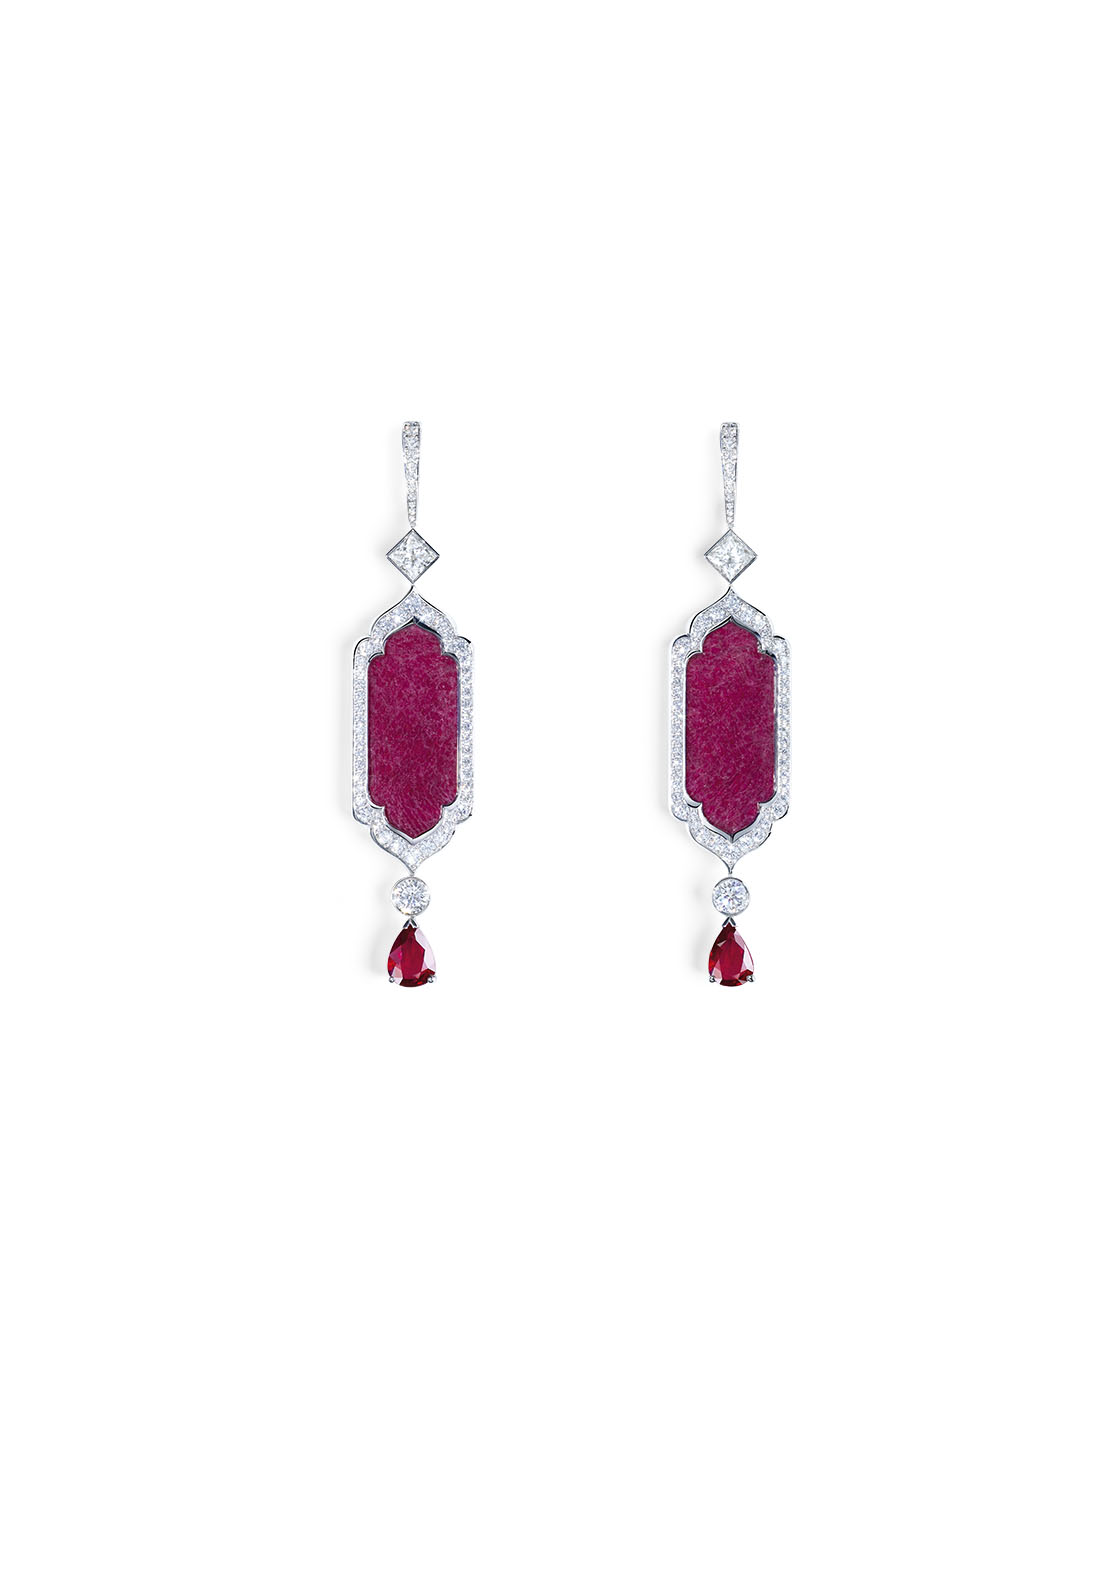 Secrets and Lights Collection by Piaget Earrings in 18K white gold set with 2 pearshaped rubies (approx. 4.13 cts), 2 fancy-cut ruby roots (approx. 12.88 cts), 2 princess-cut diamond (approx. 1.41 cts), and 120 brilliantcut diamonds (approx. 2.93 cts).